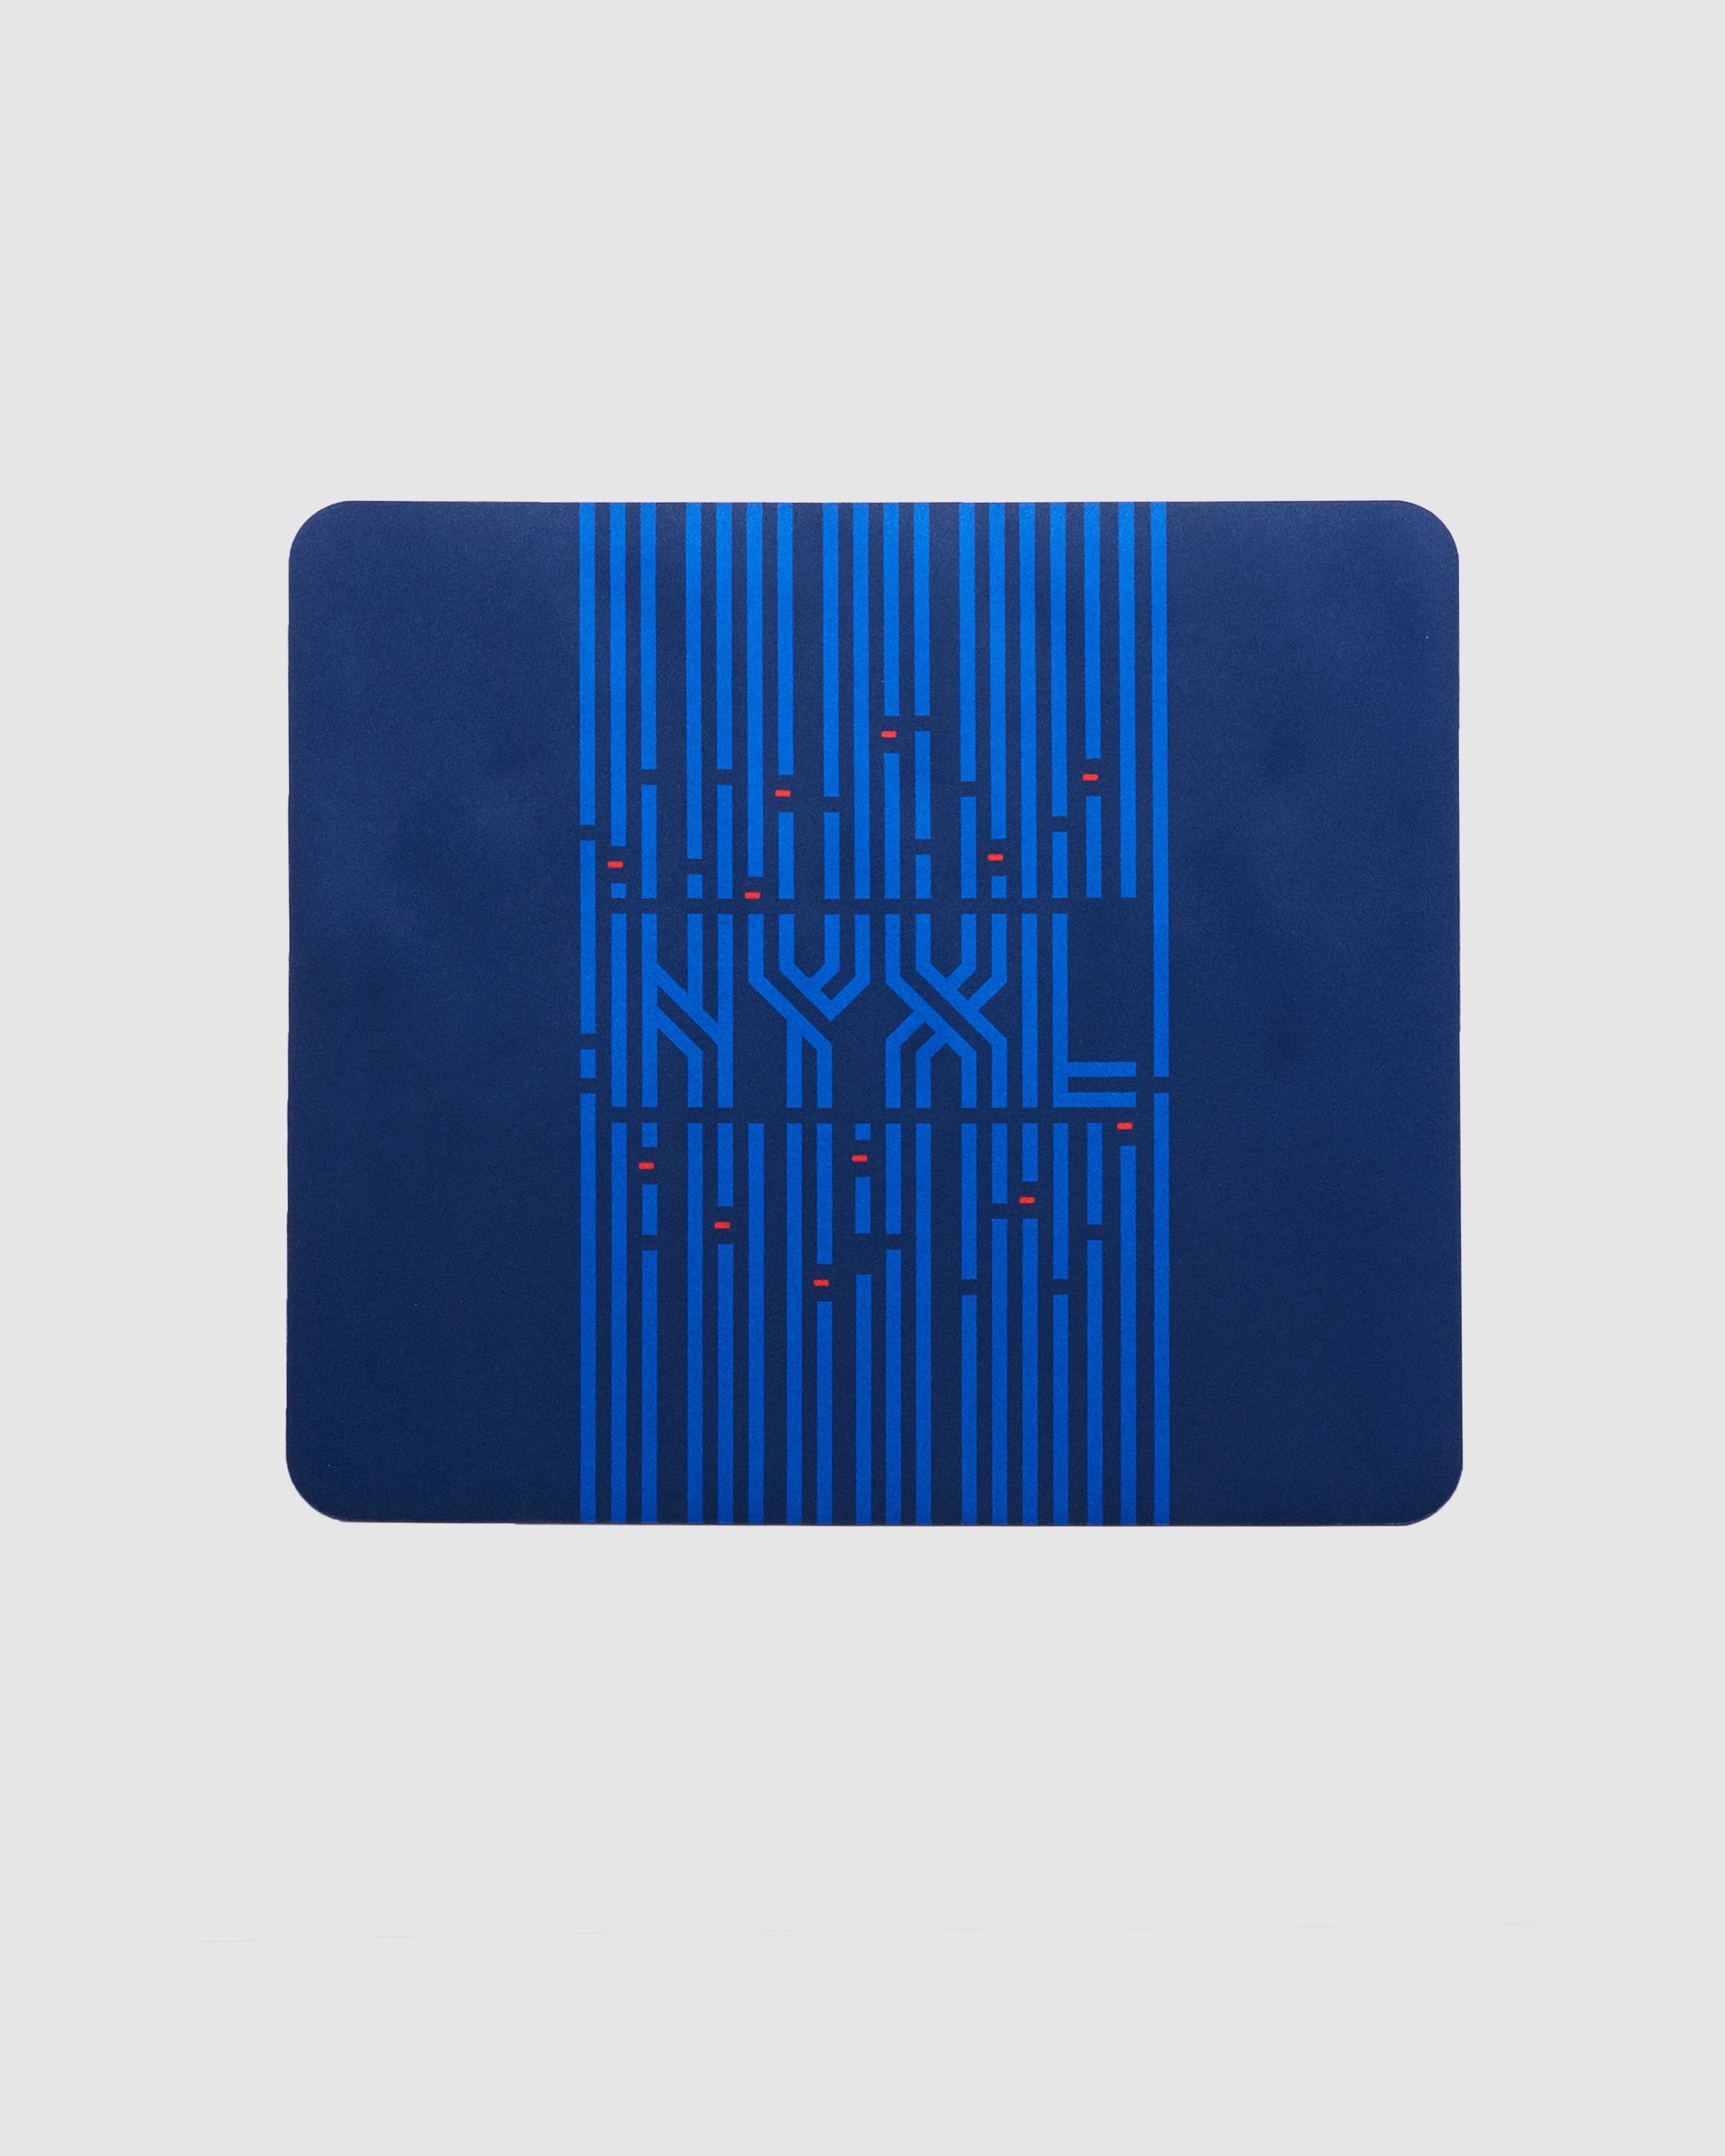 NYXL XL Gaming Mouse Pad